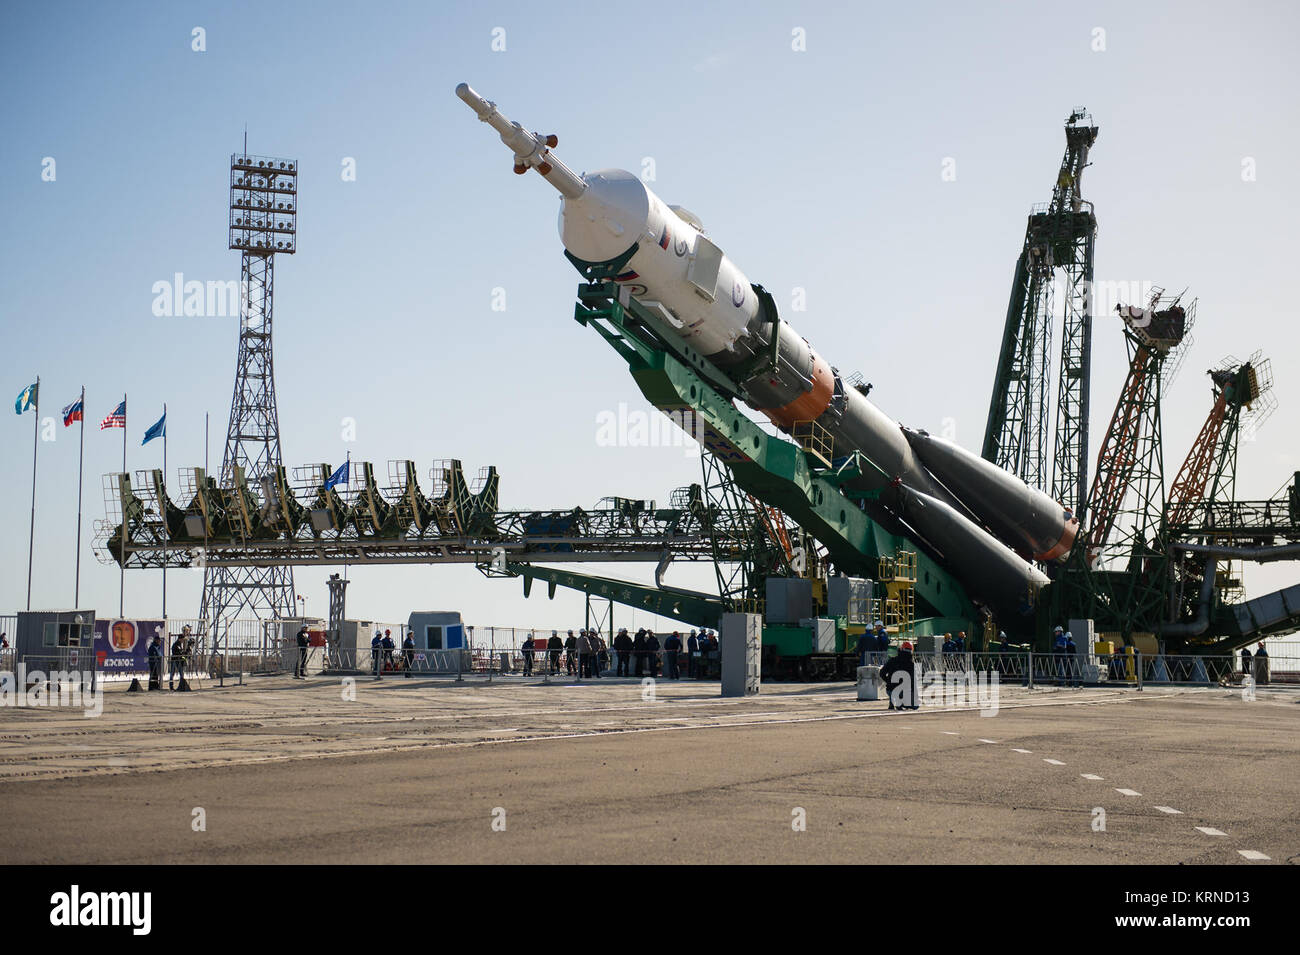 The Soyuz MS-04 spacecraft is raised into position on the launch pad Monday, April 17, 2017 at the Baikonur Cosmodrome - Stock Image